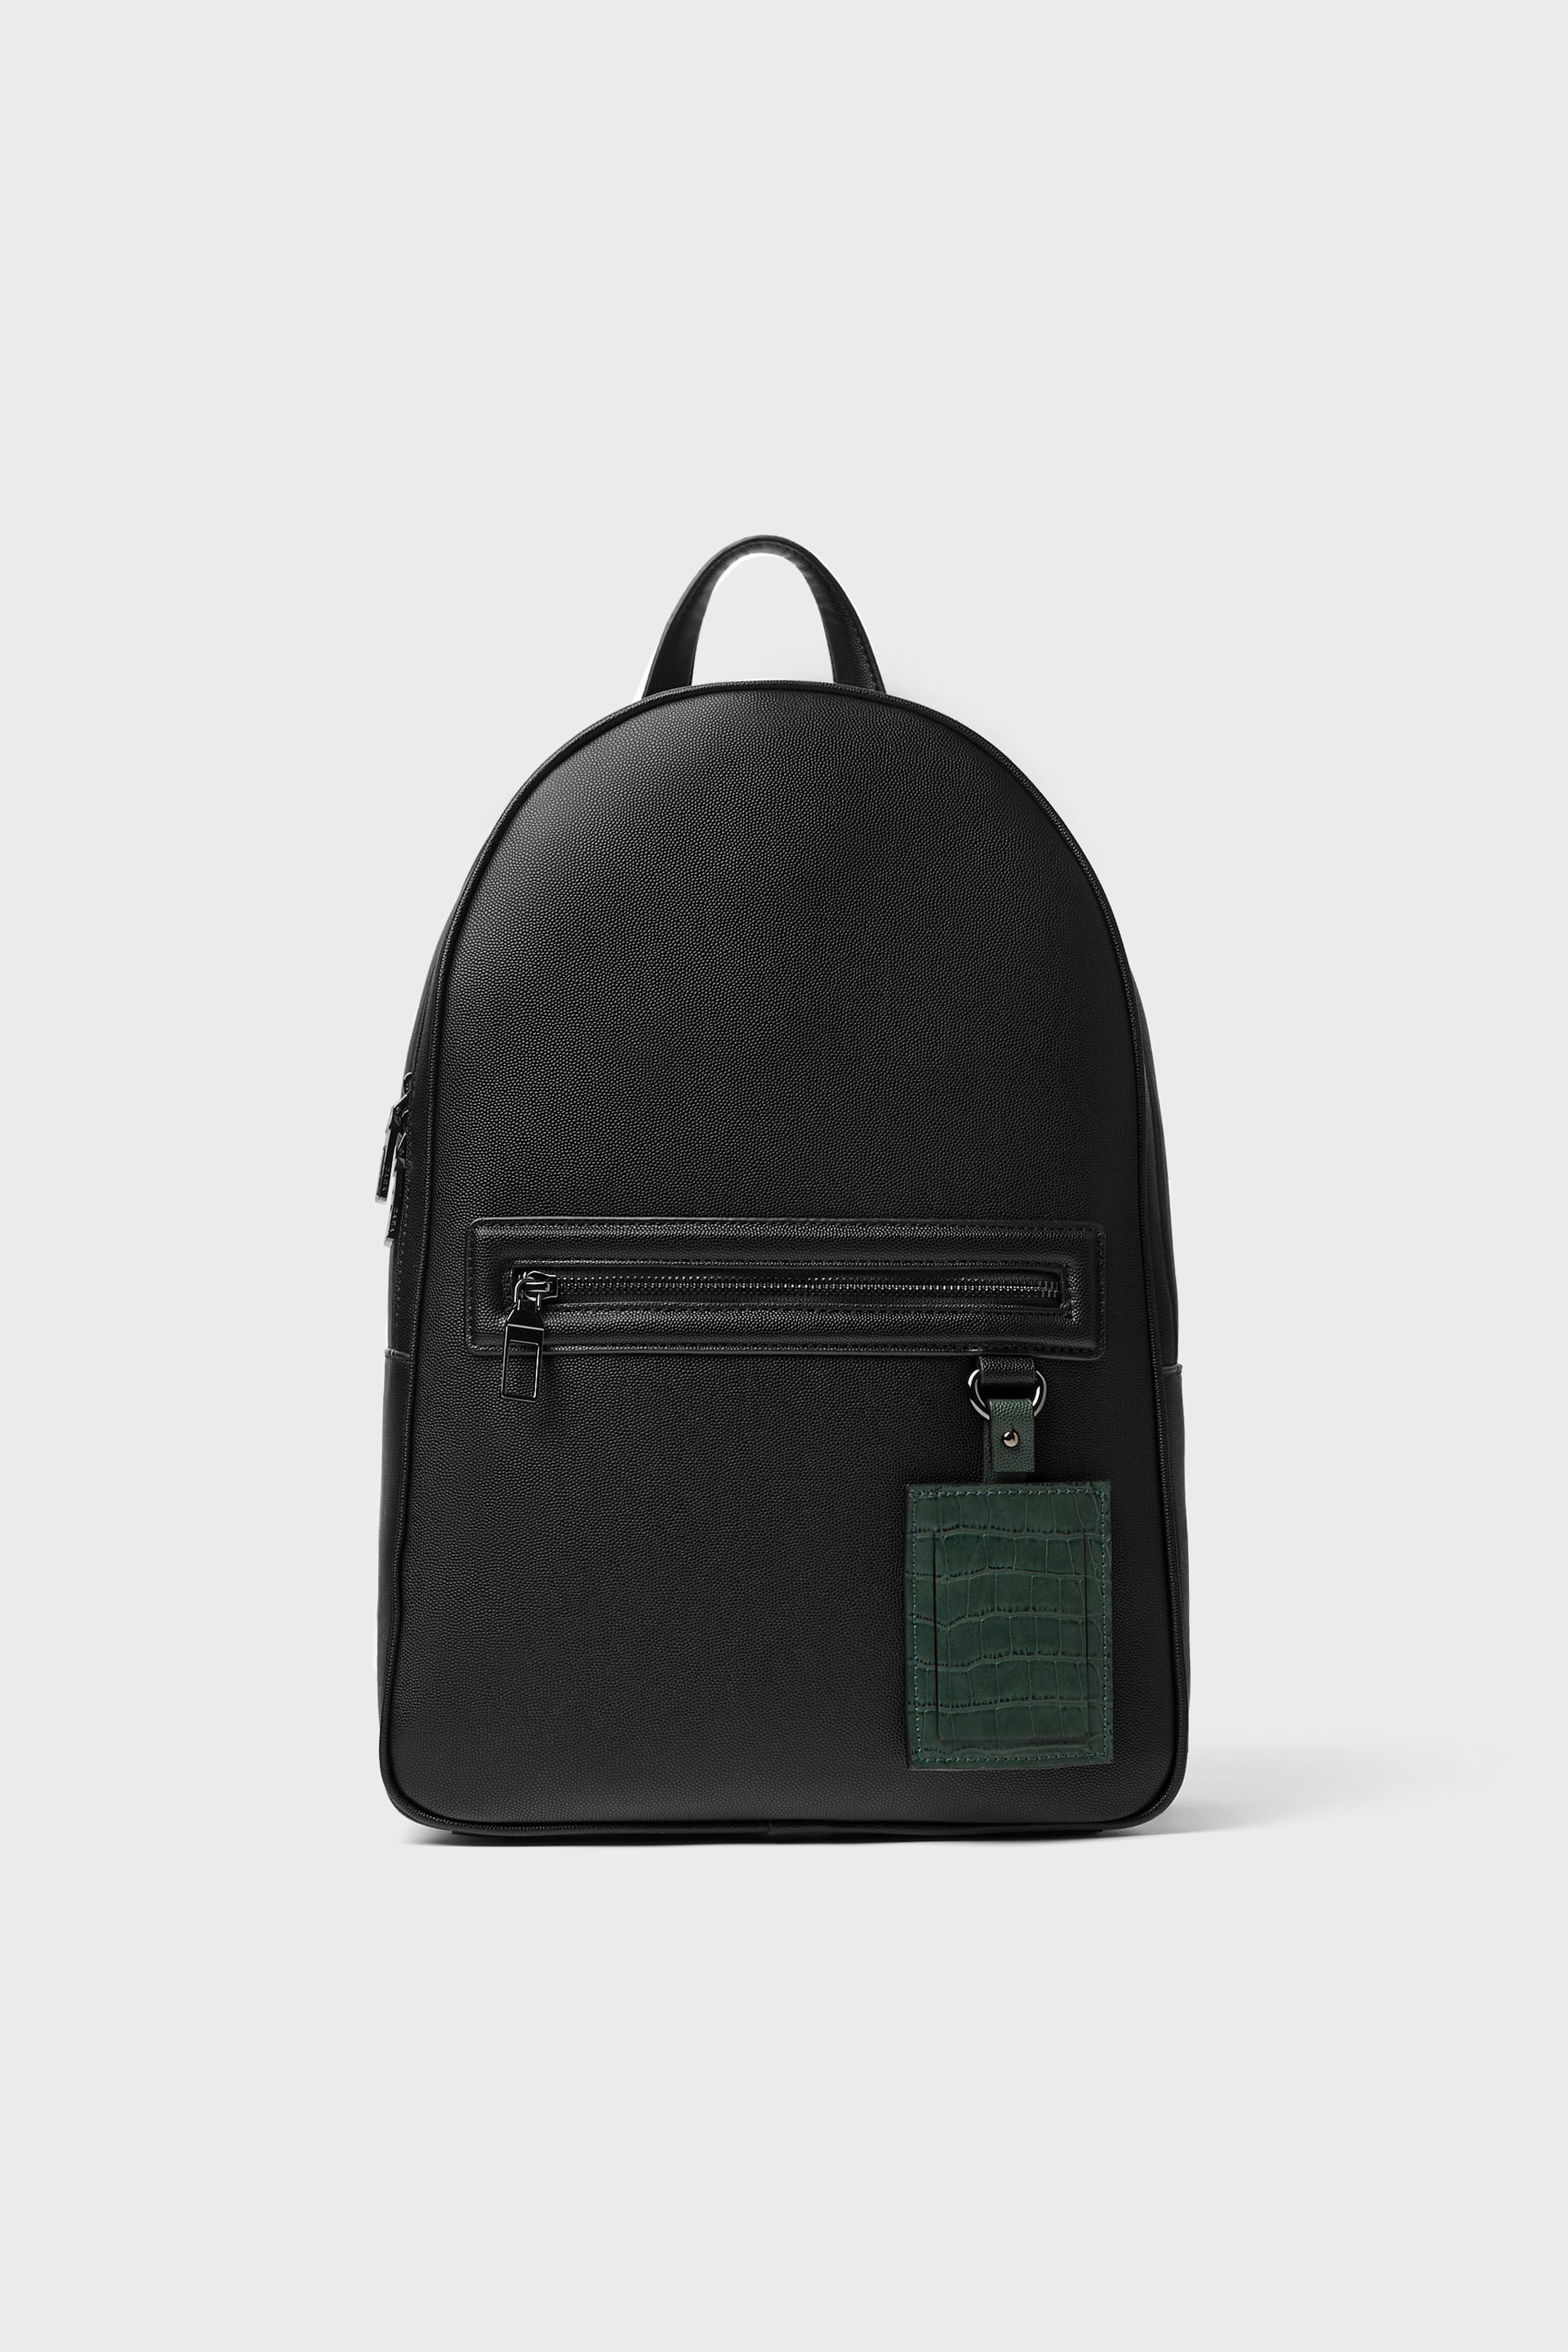 Smart Basic Backpack by Zara